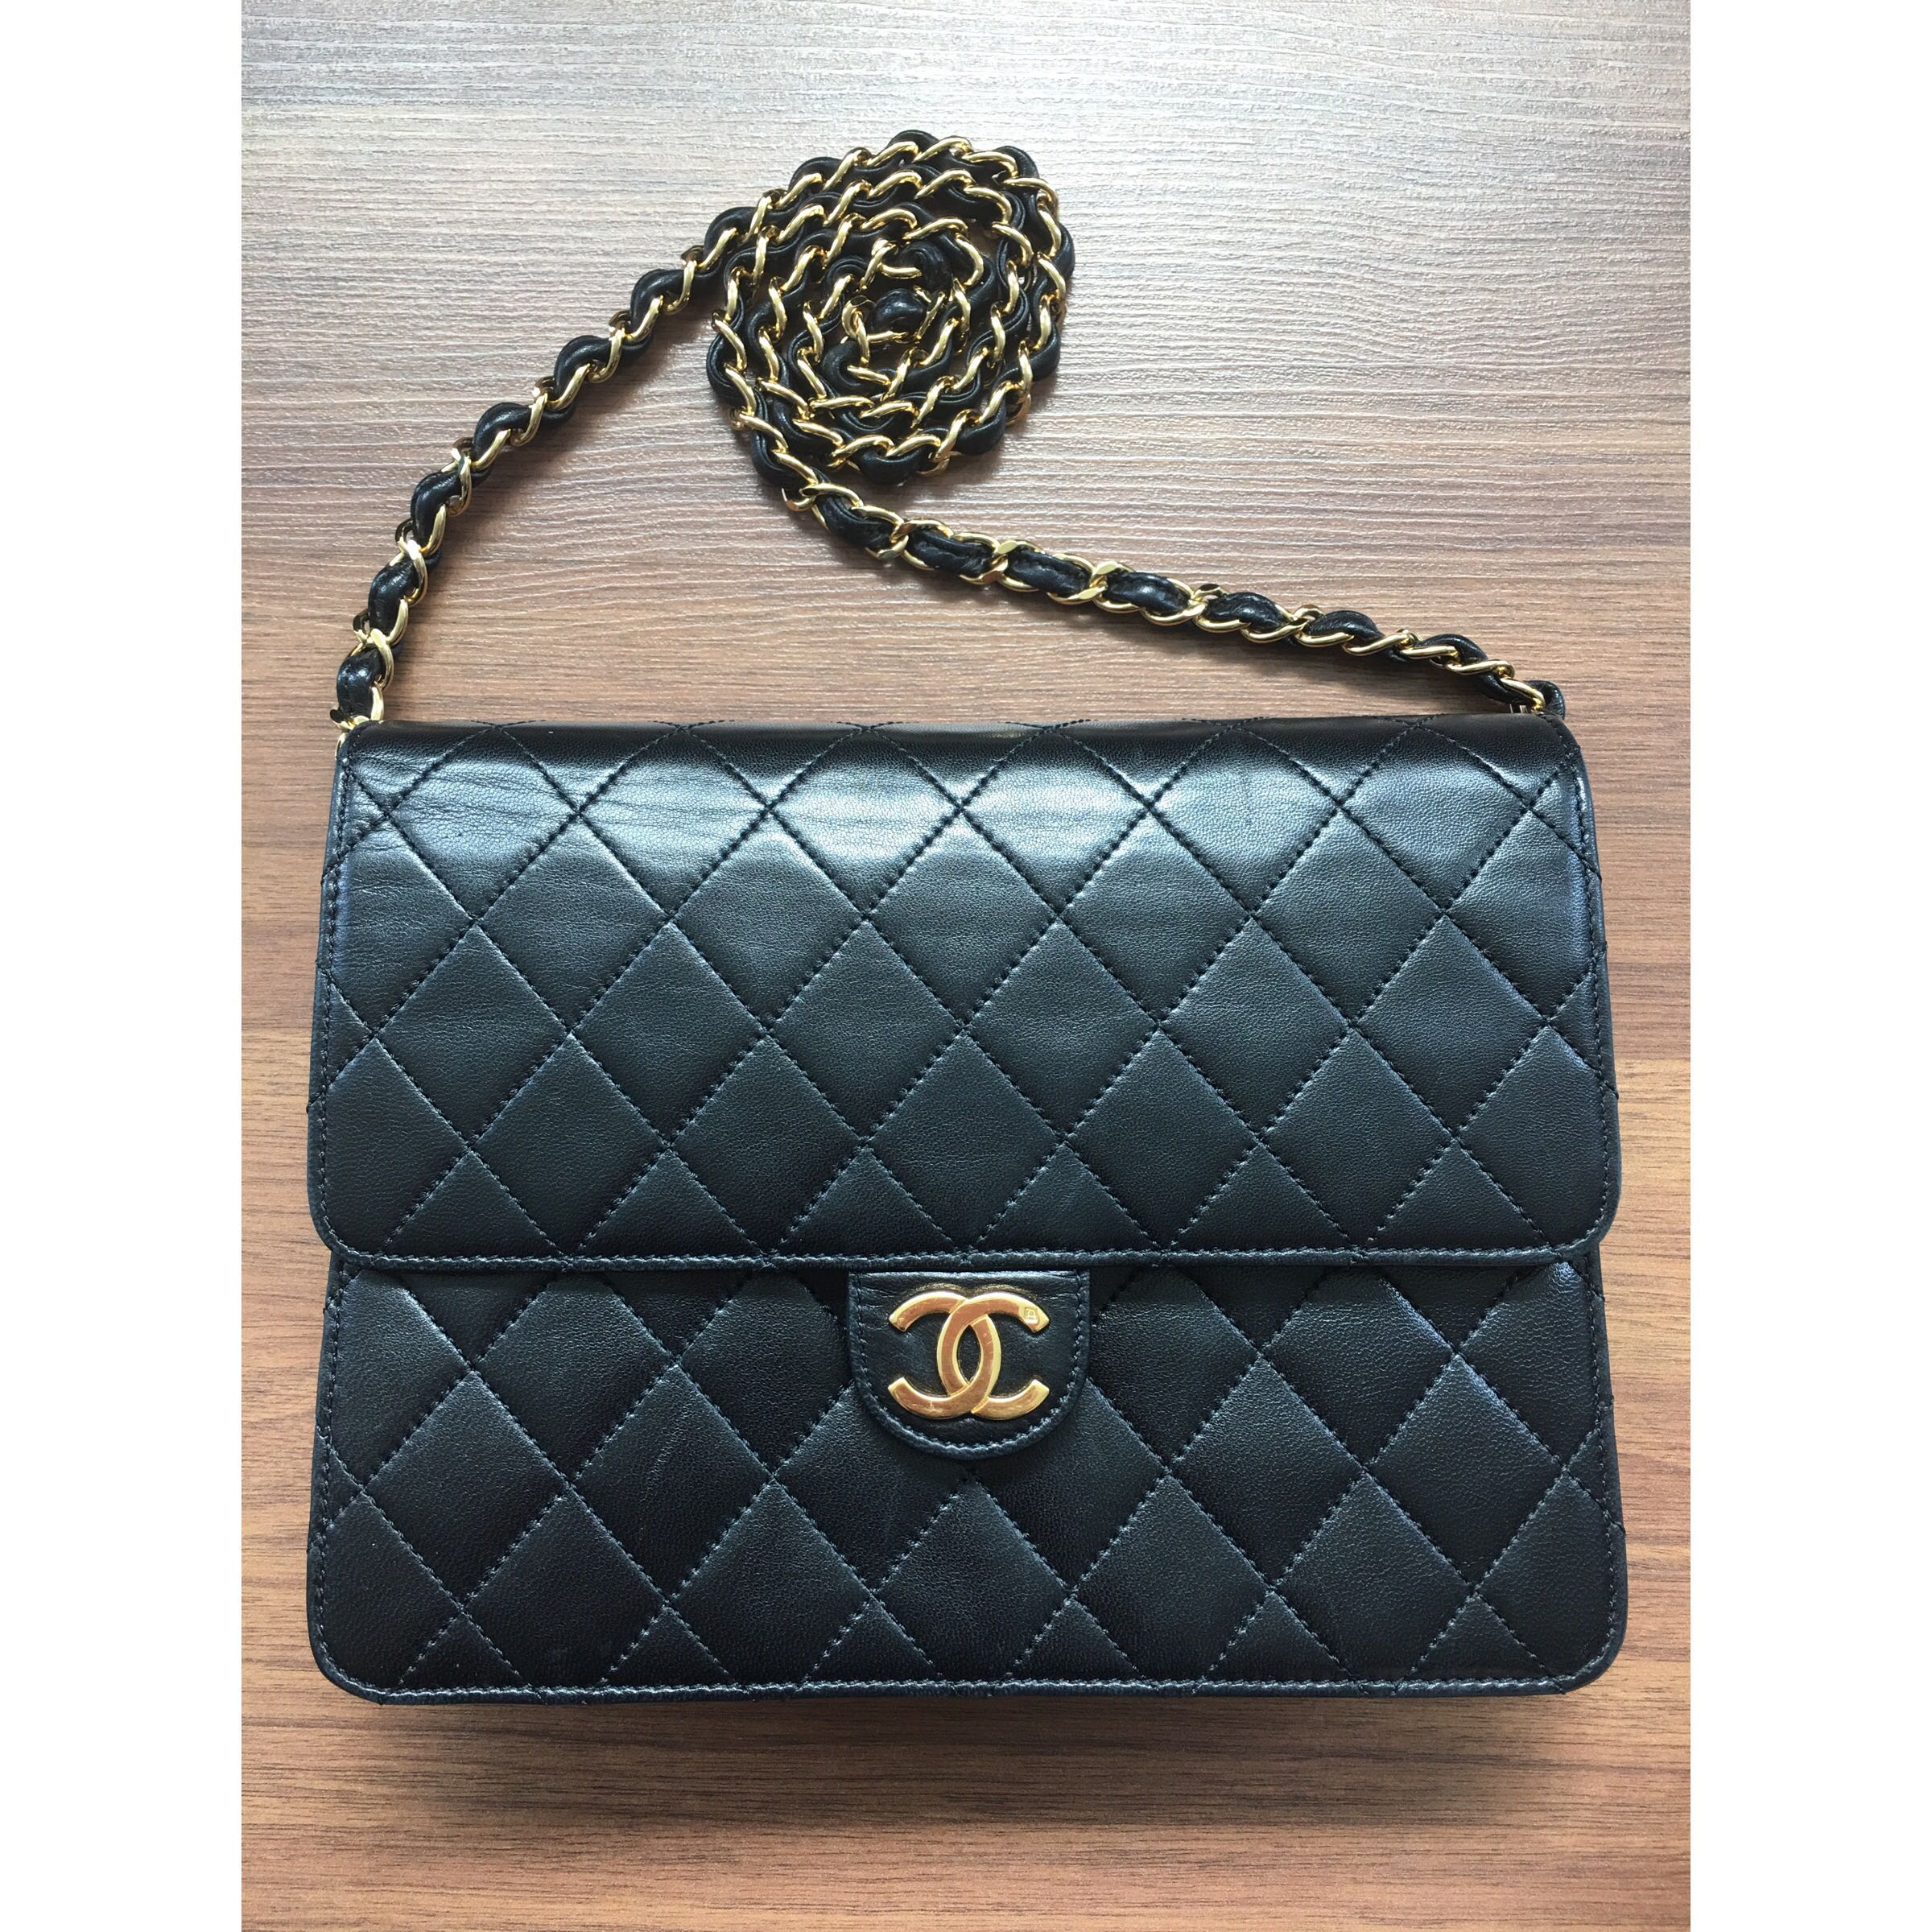 b9c7eb8555a2 Chanel Classic 24k Gold Flap Bag (Vintage)